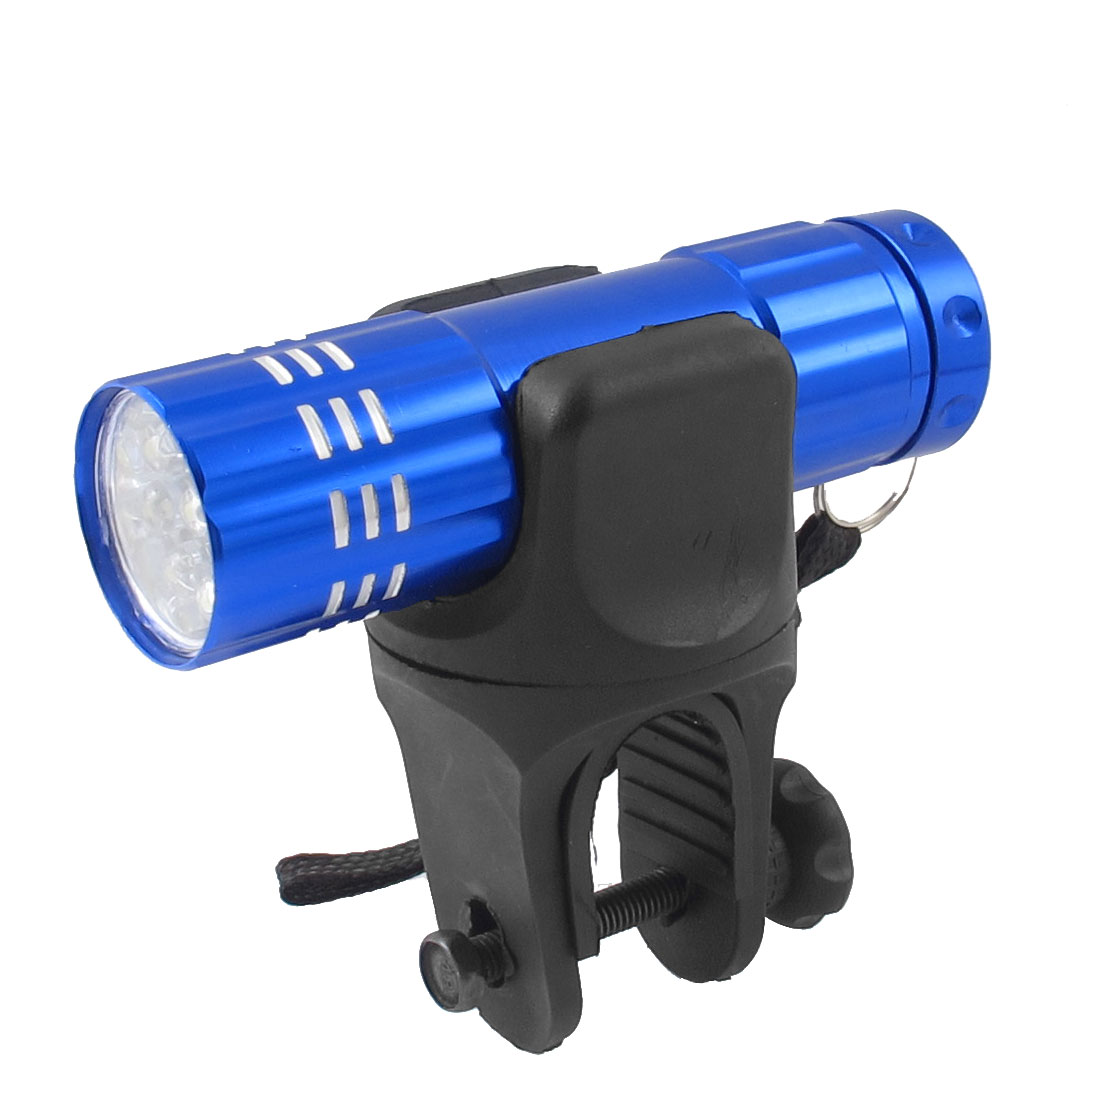 Bicycle Cycling Front Light Mount 9 White LED Flashlight Torch w Holder Bracket